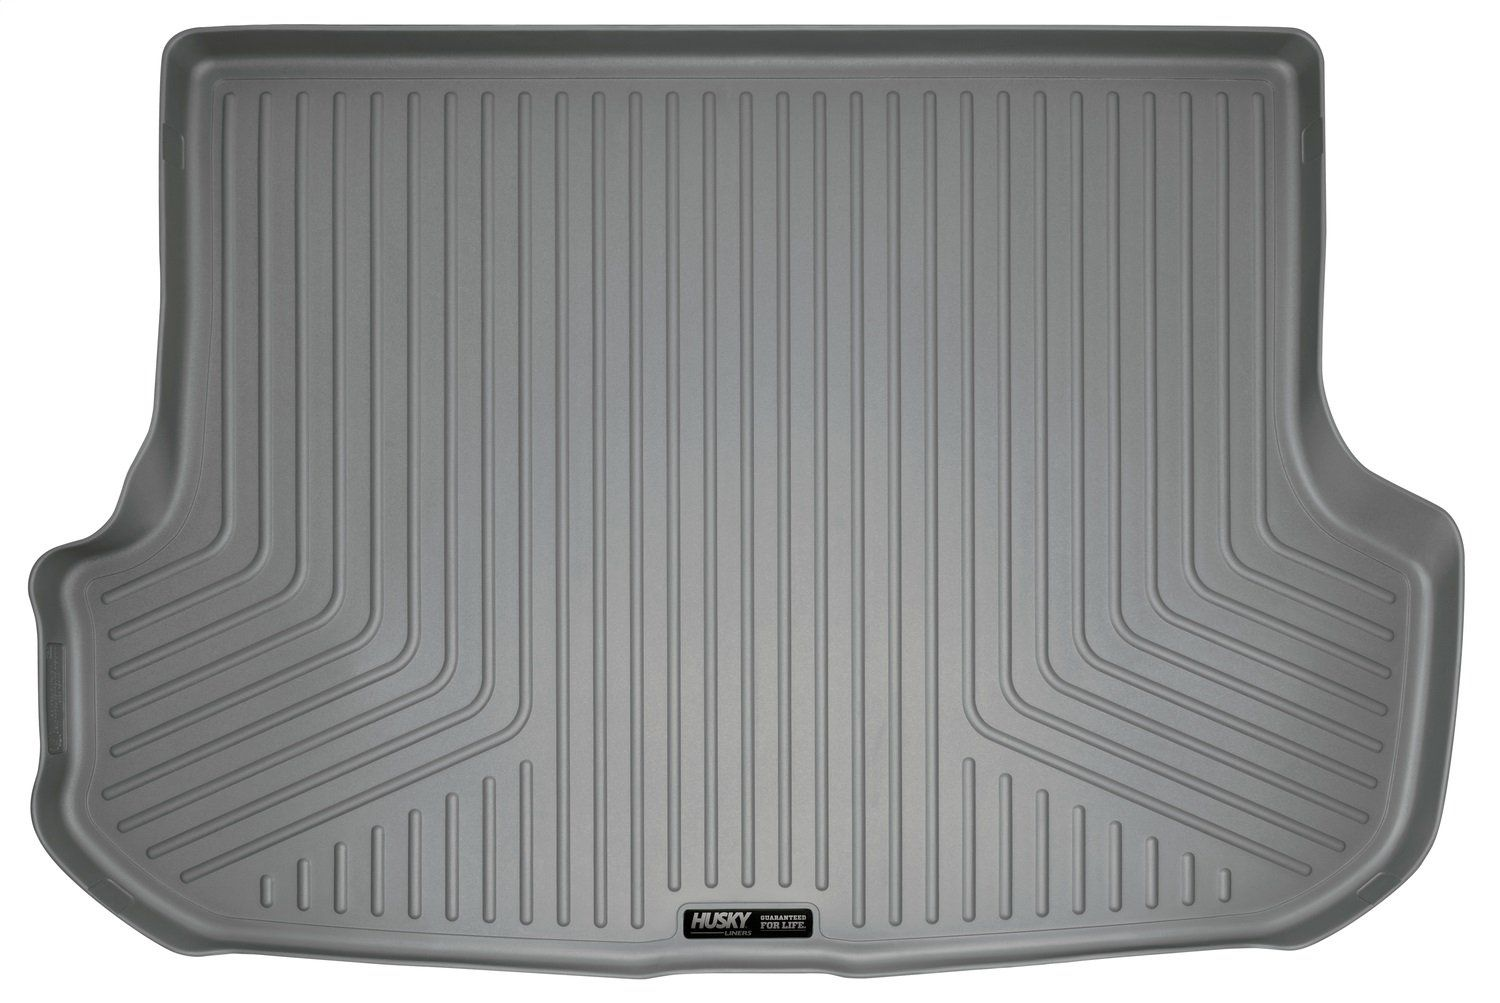 Husky Liners Husarw795 Cargo Area Liner Fits Lexus Rx450h 20162017 Want To Know More Click On The Image This Is An Affil Husky Liners Cargo Liner Cargo